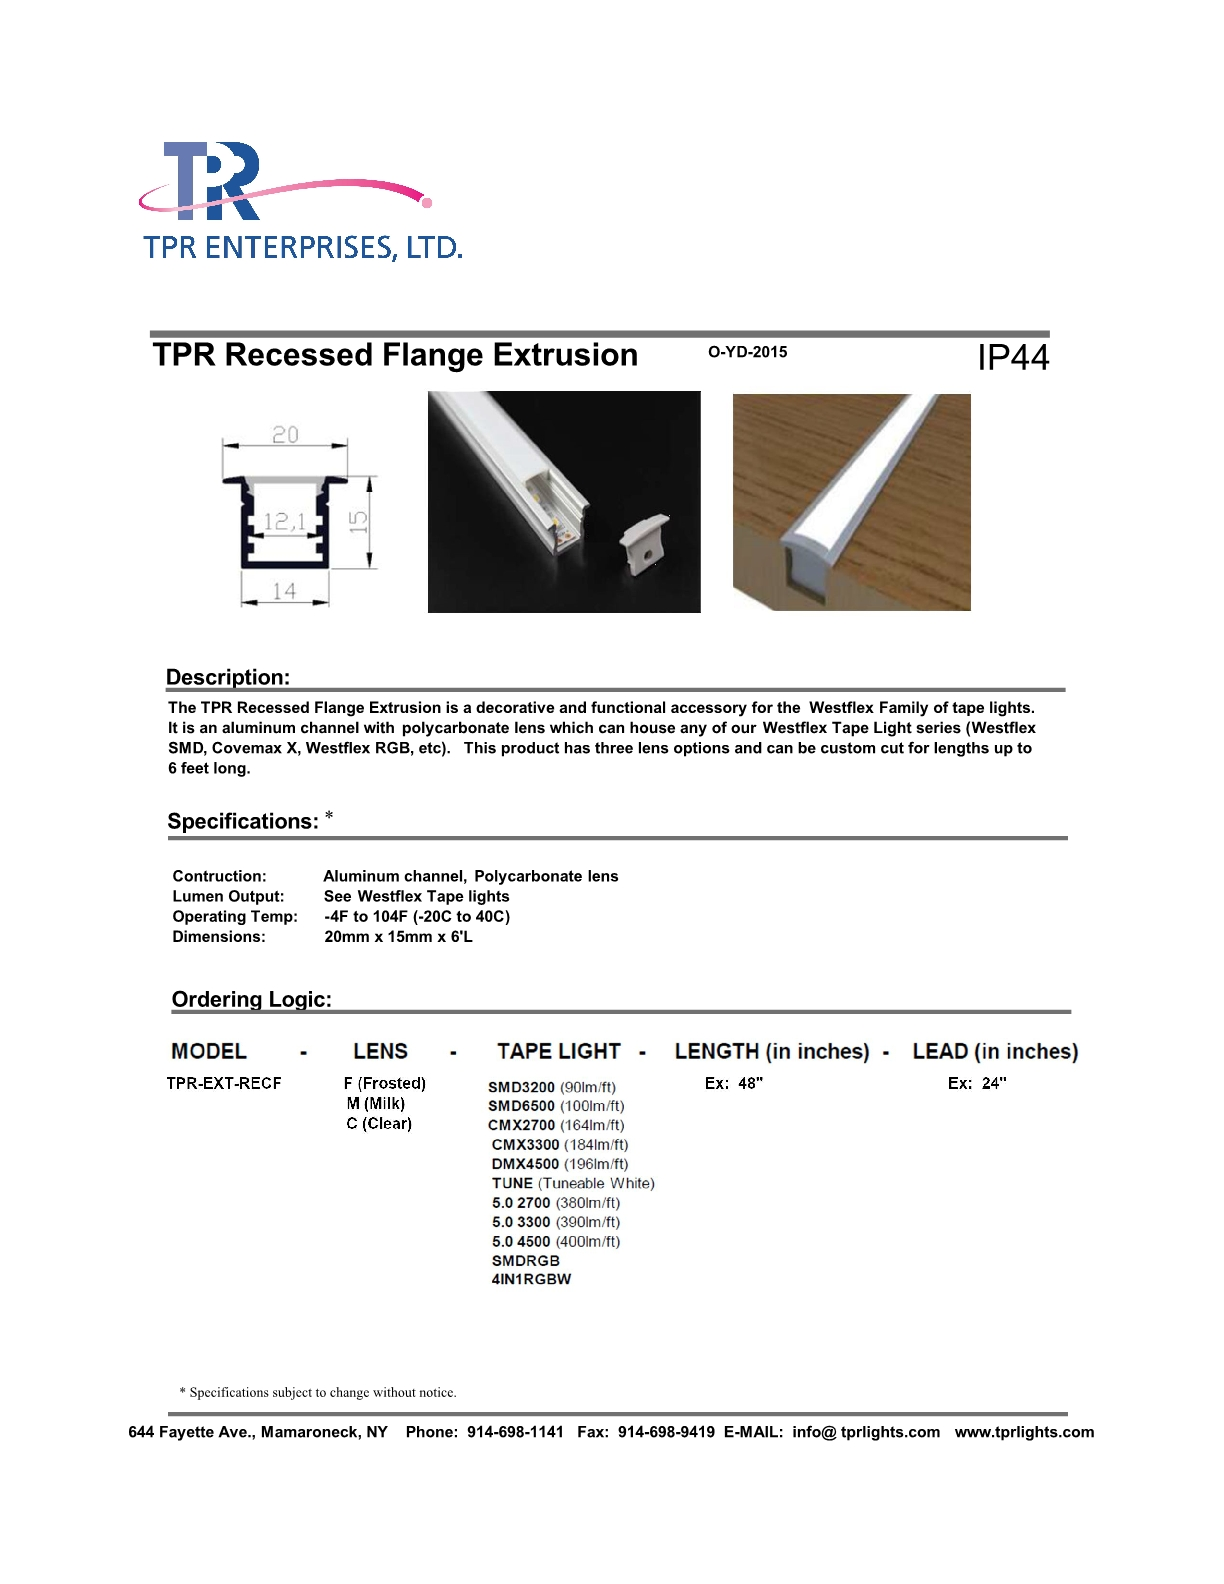 TPR-Recessed-Flange-Extrusion_new1